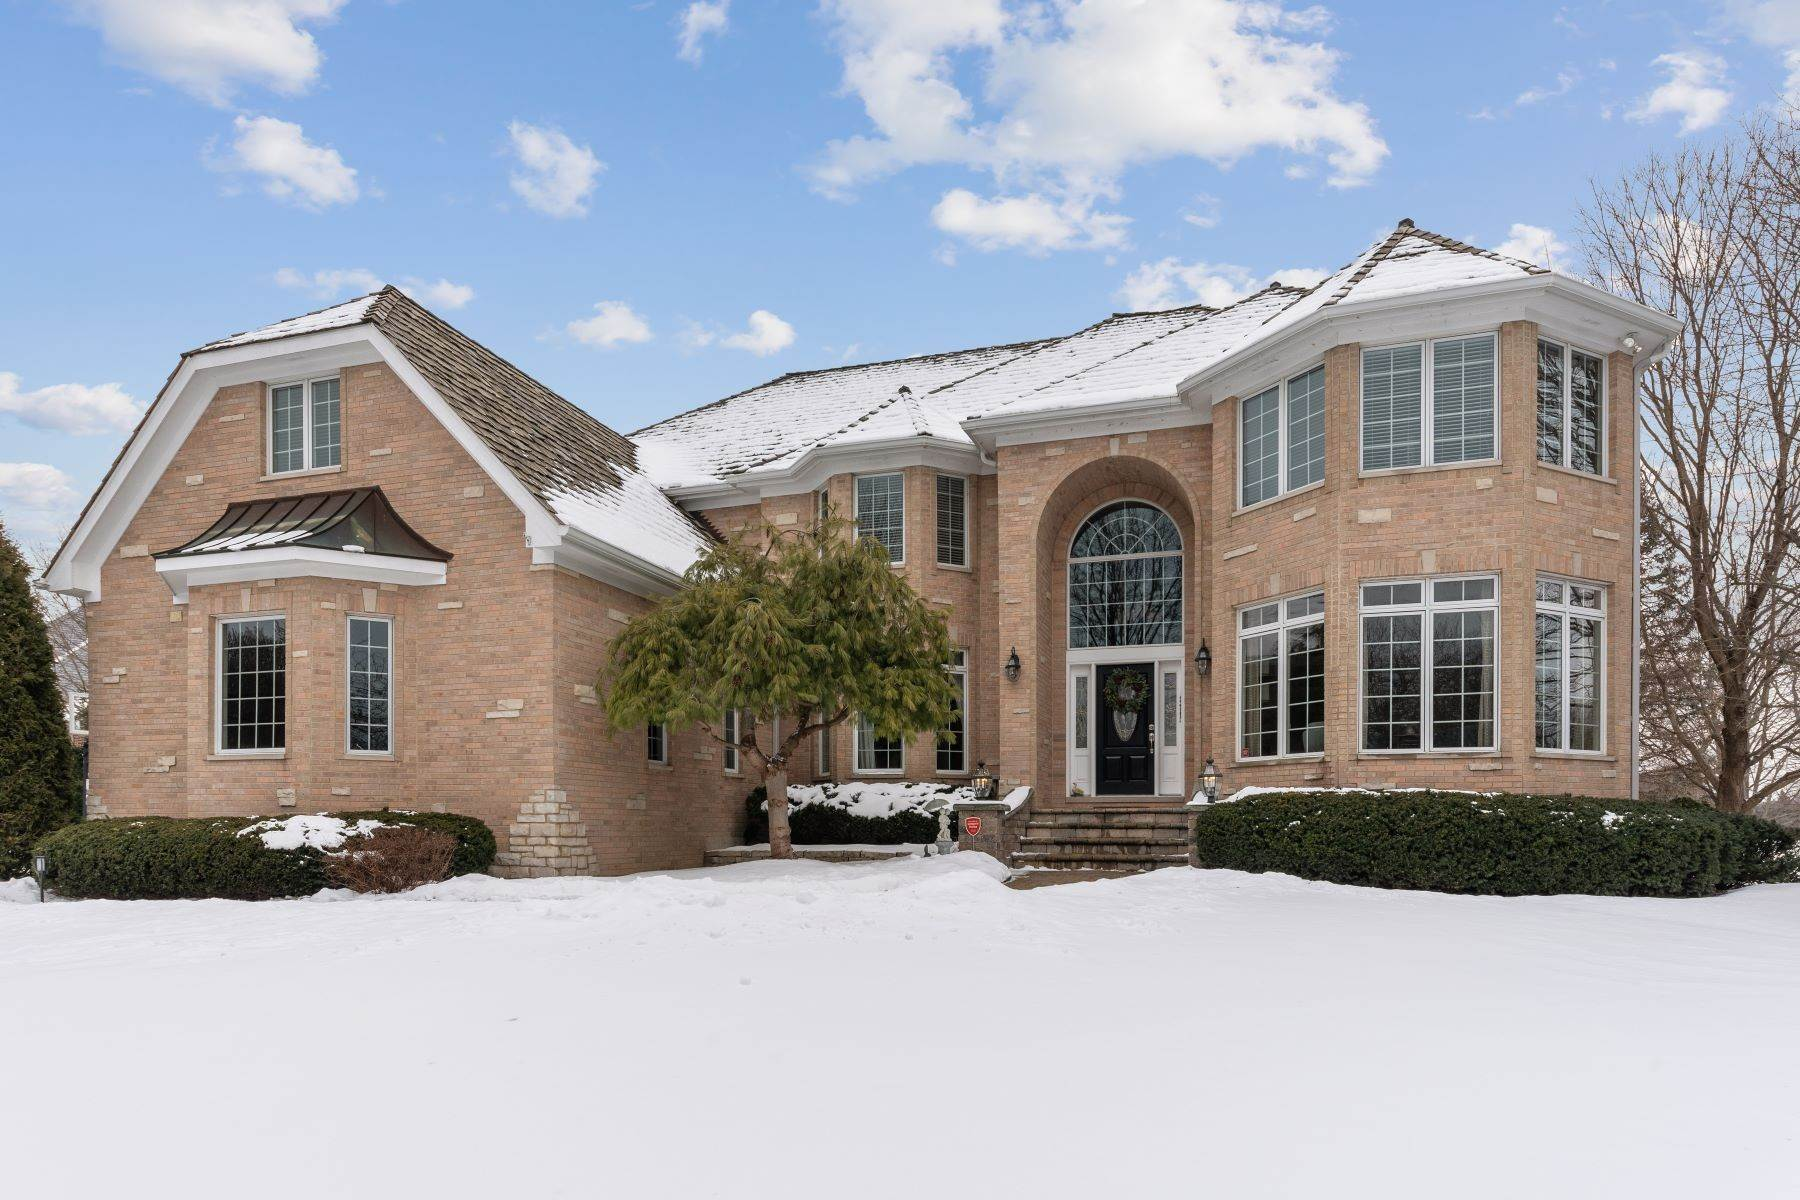 Single Family Homes for Sale at Extensive Detail And Custom Design 51 Stratham Circle North Barrington, Illinois 60010 United States